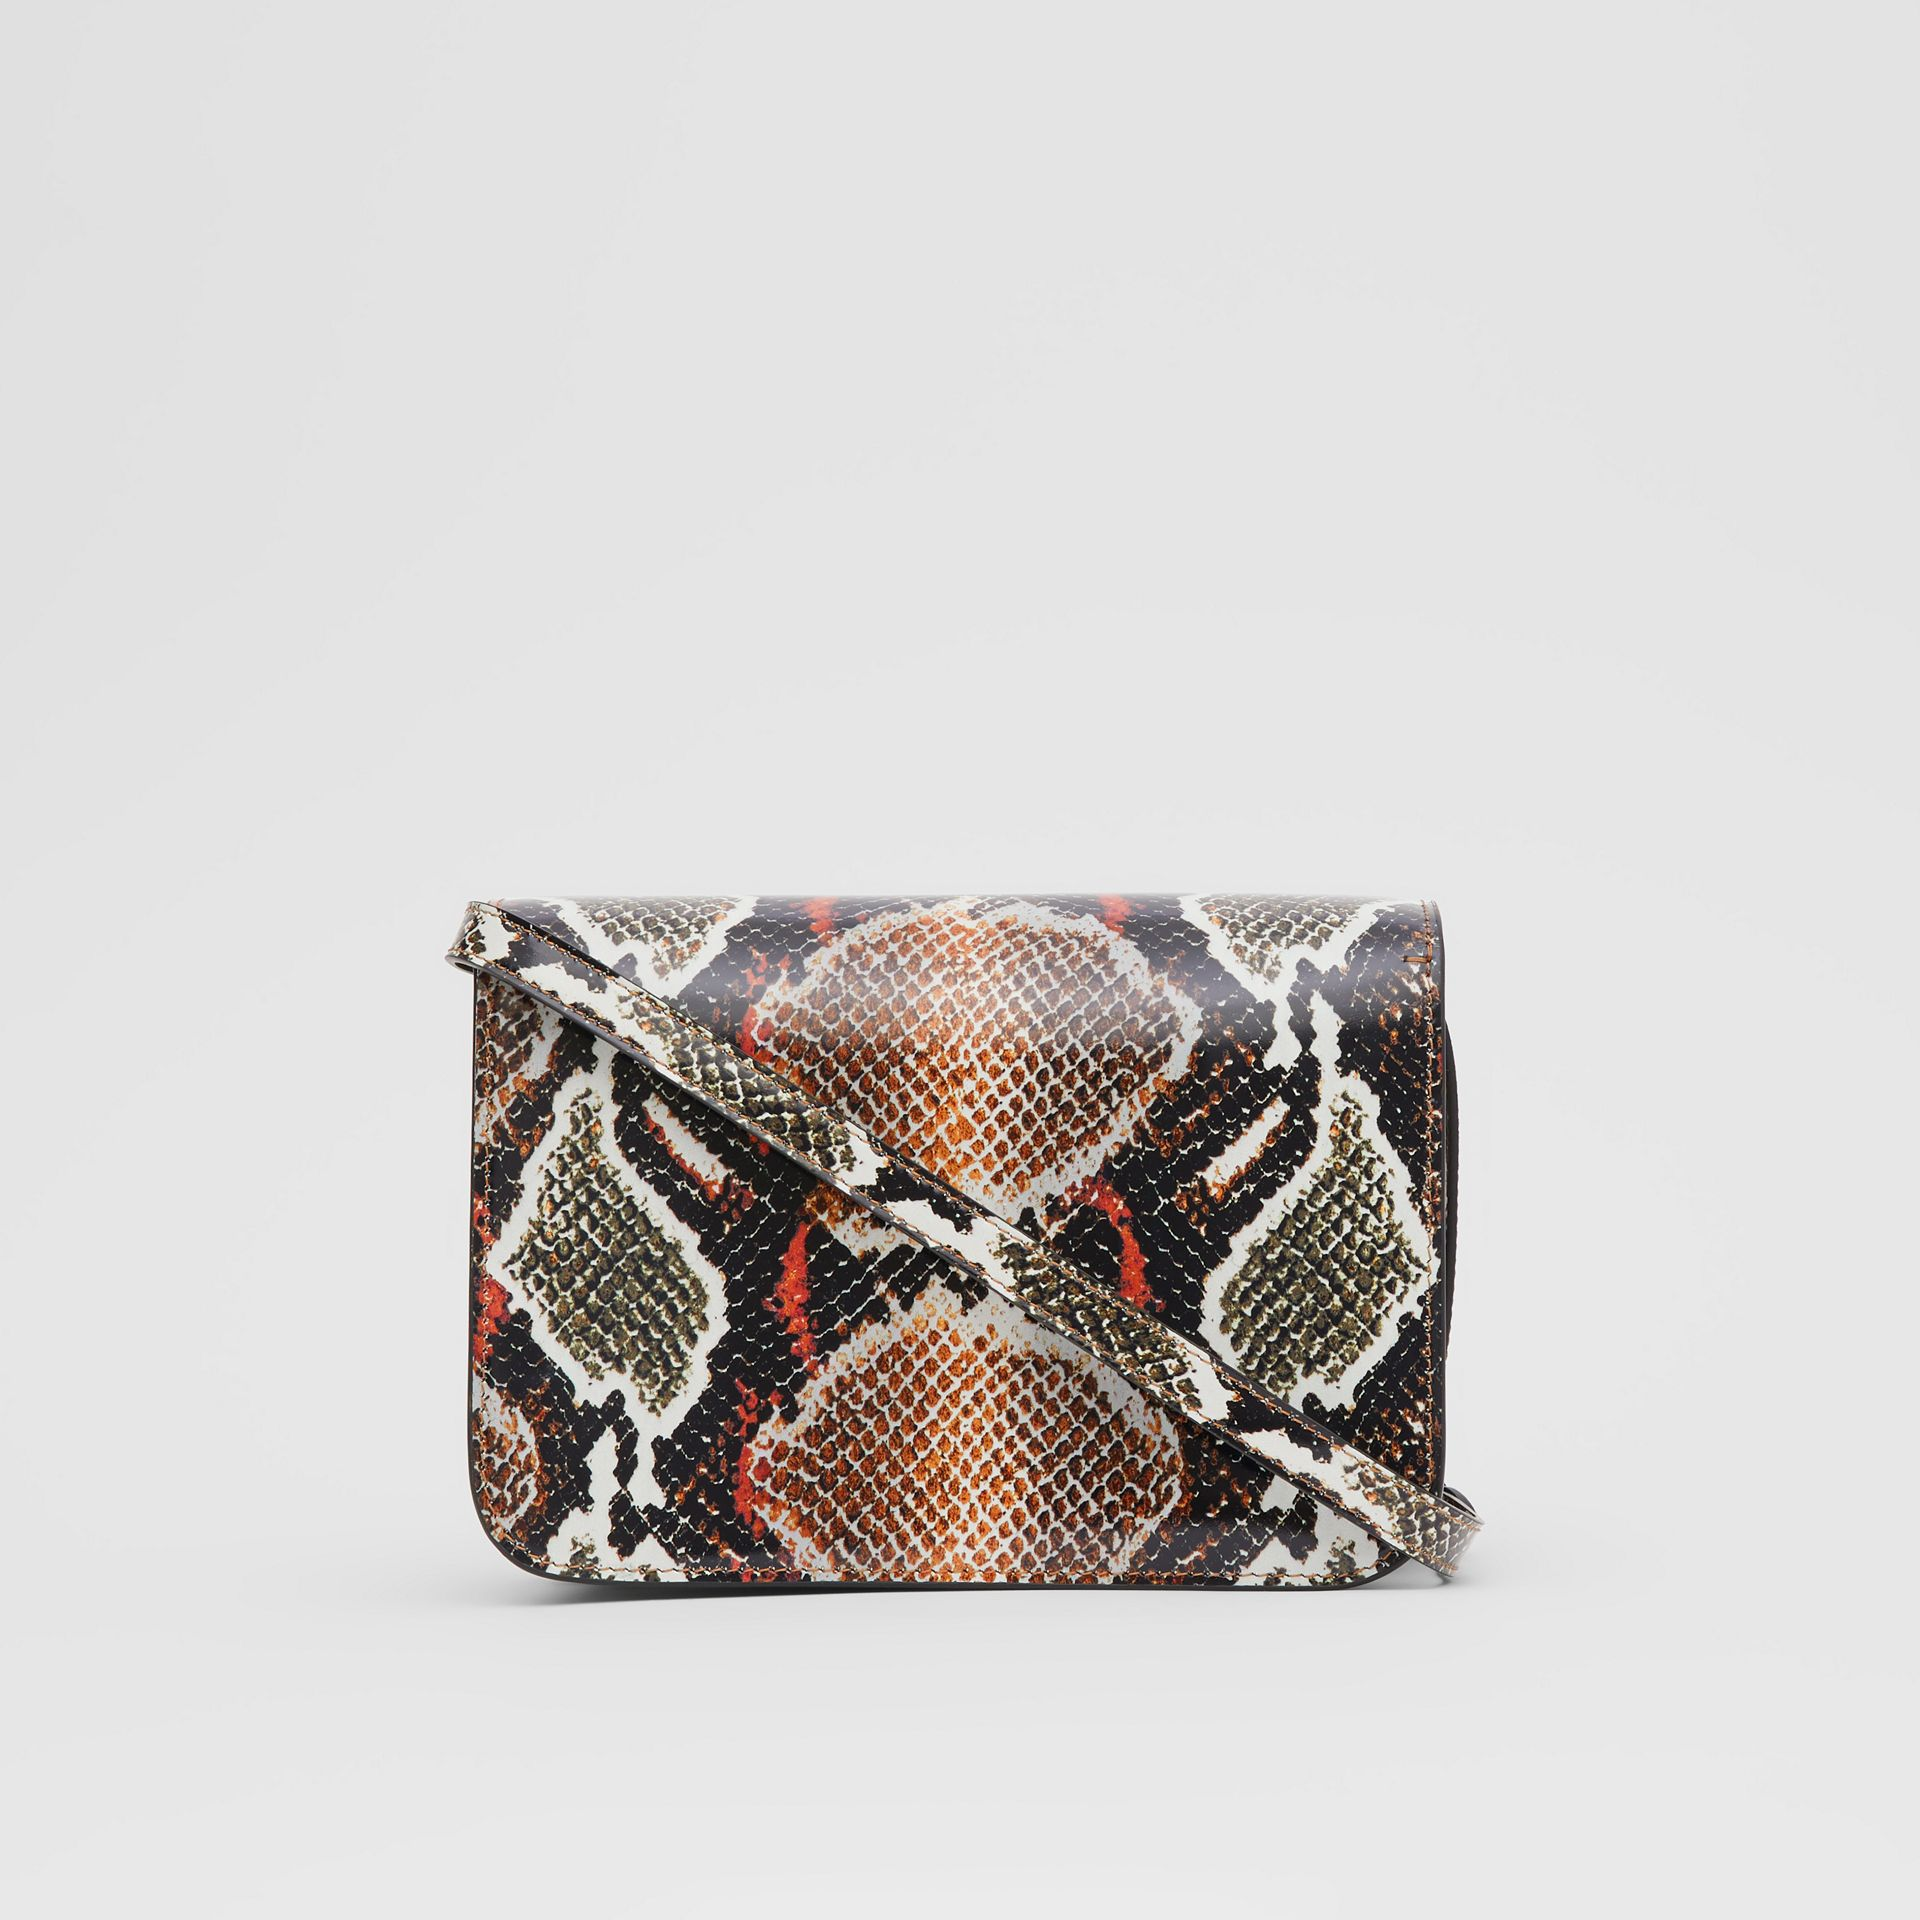 Small Python Print Leather TB Bag in Soft Cocoa - Women | Burberry - gallery image 7